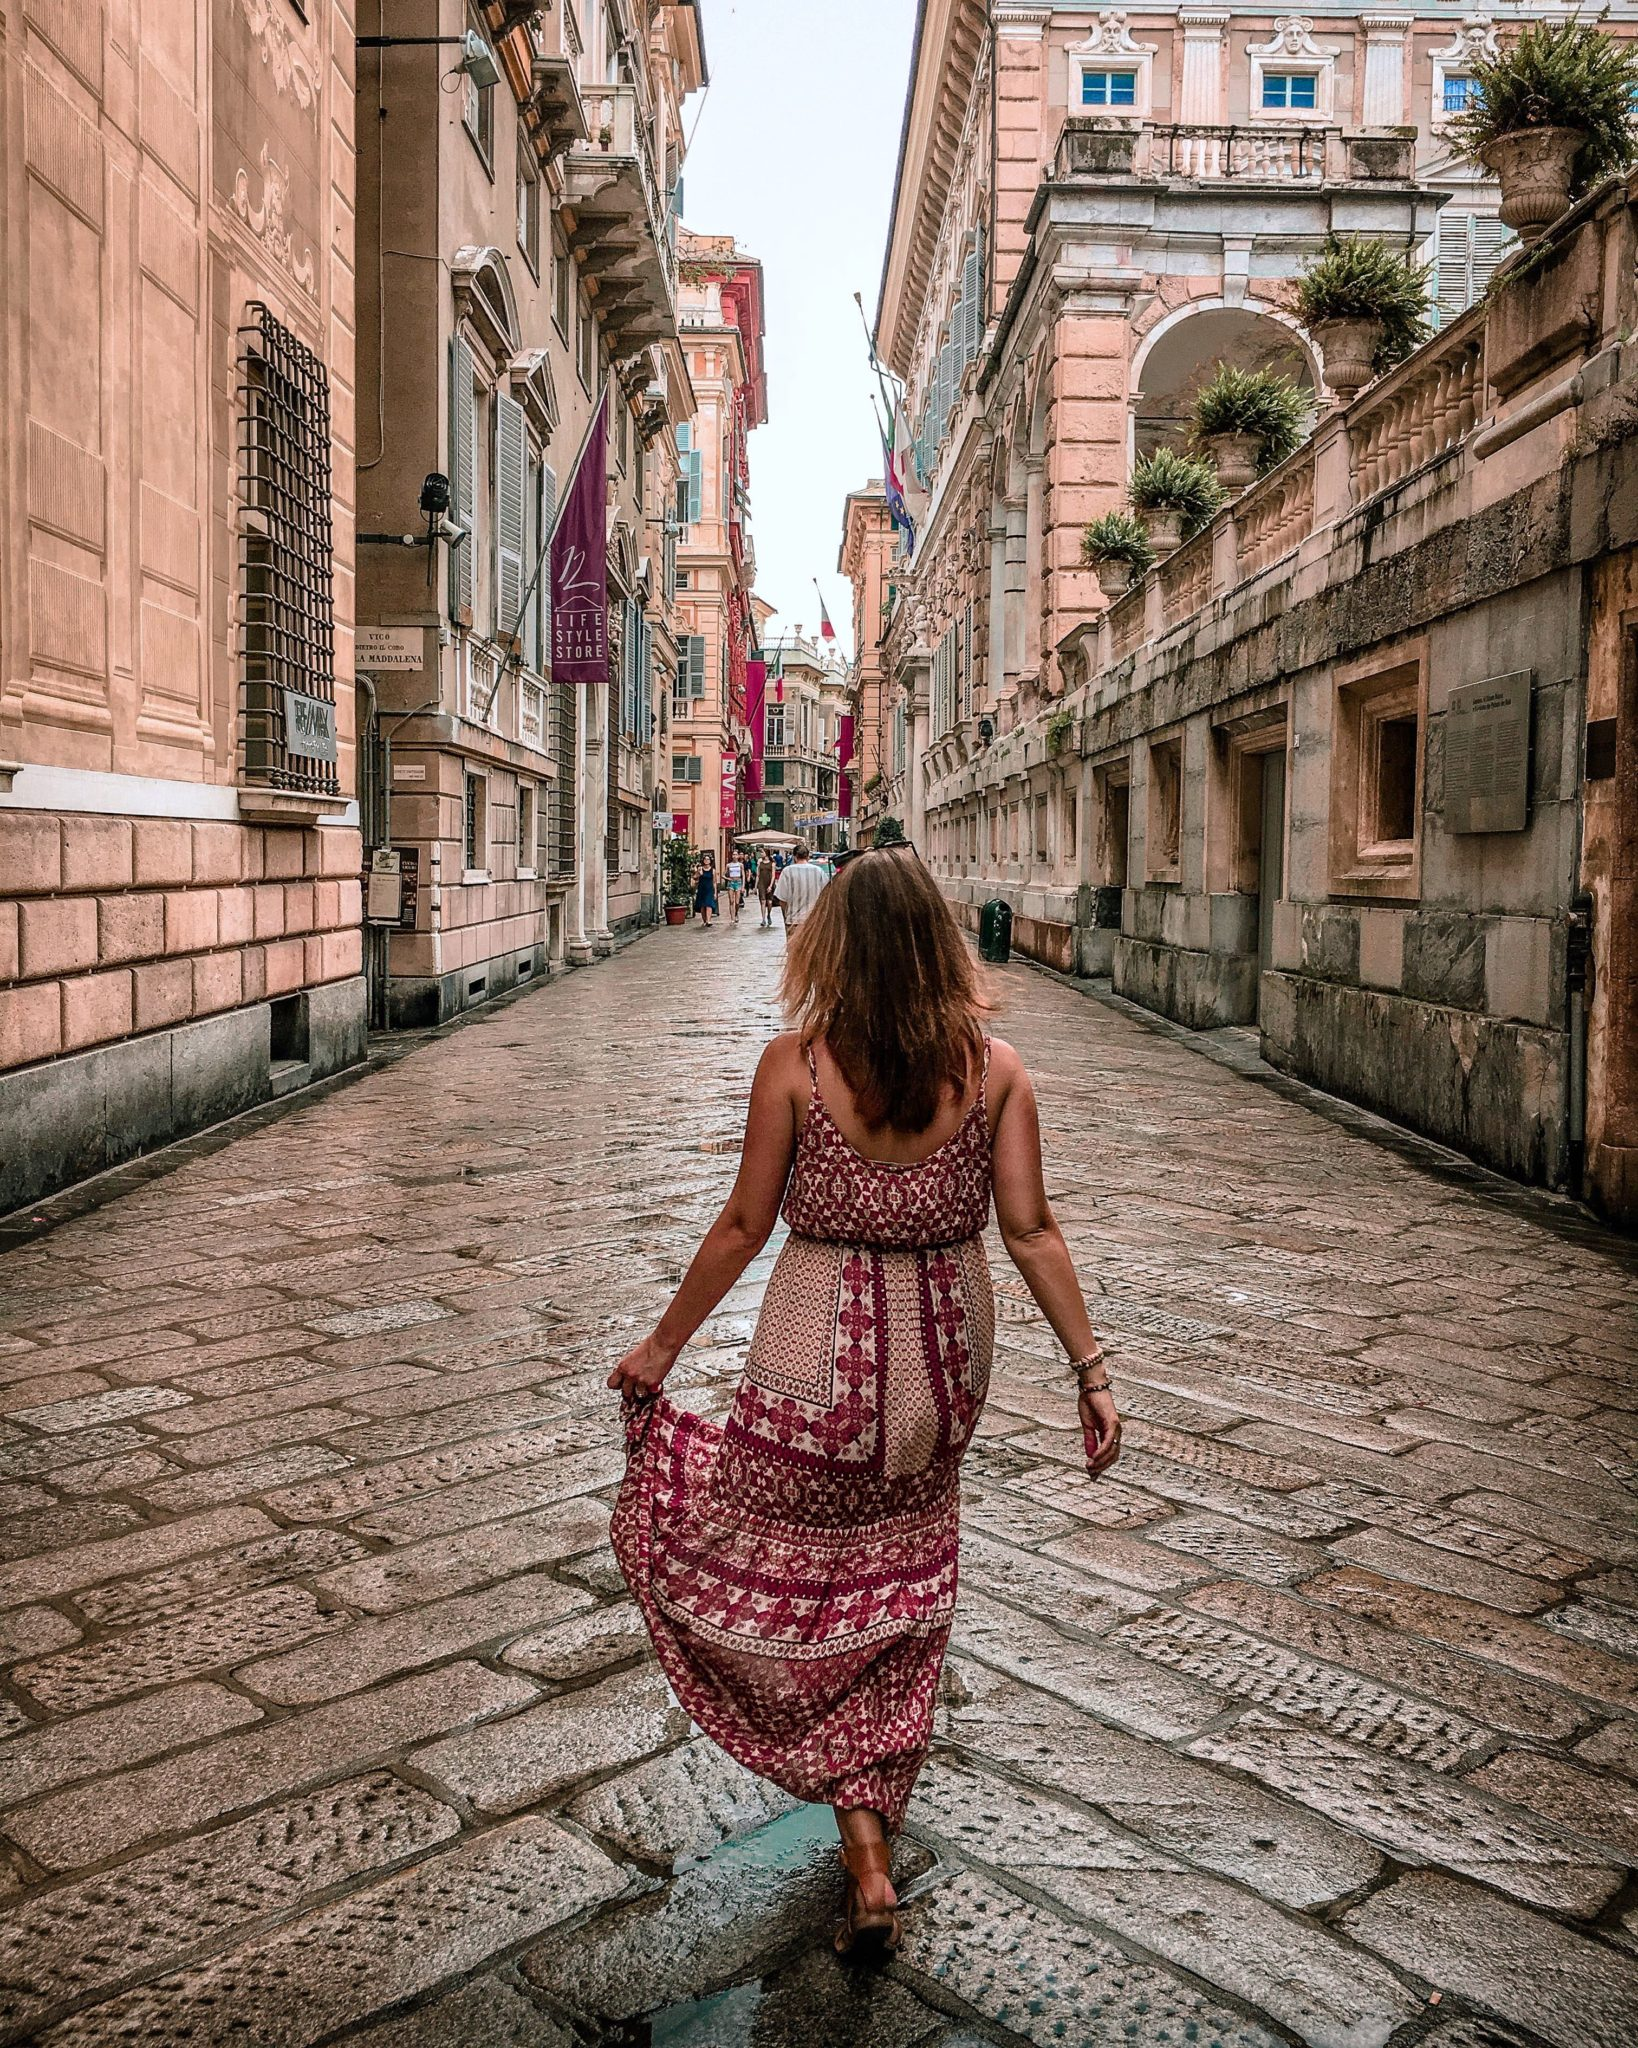 Strolling down Via Garibaldi during our 10 days in Italy